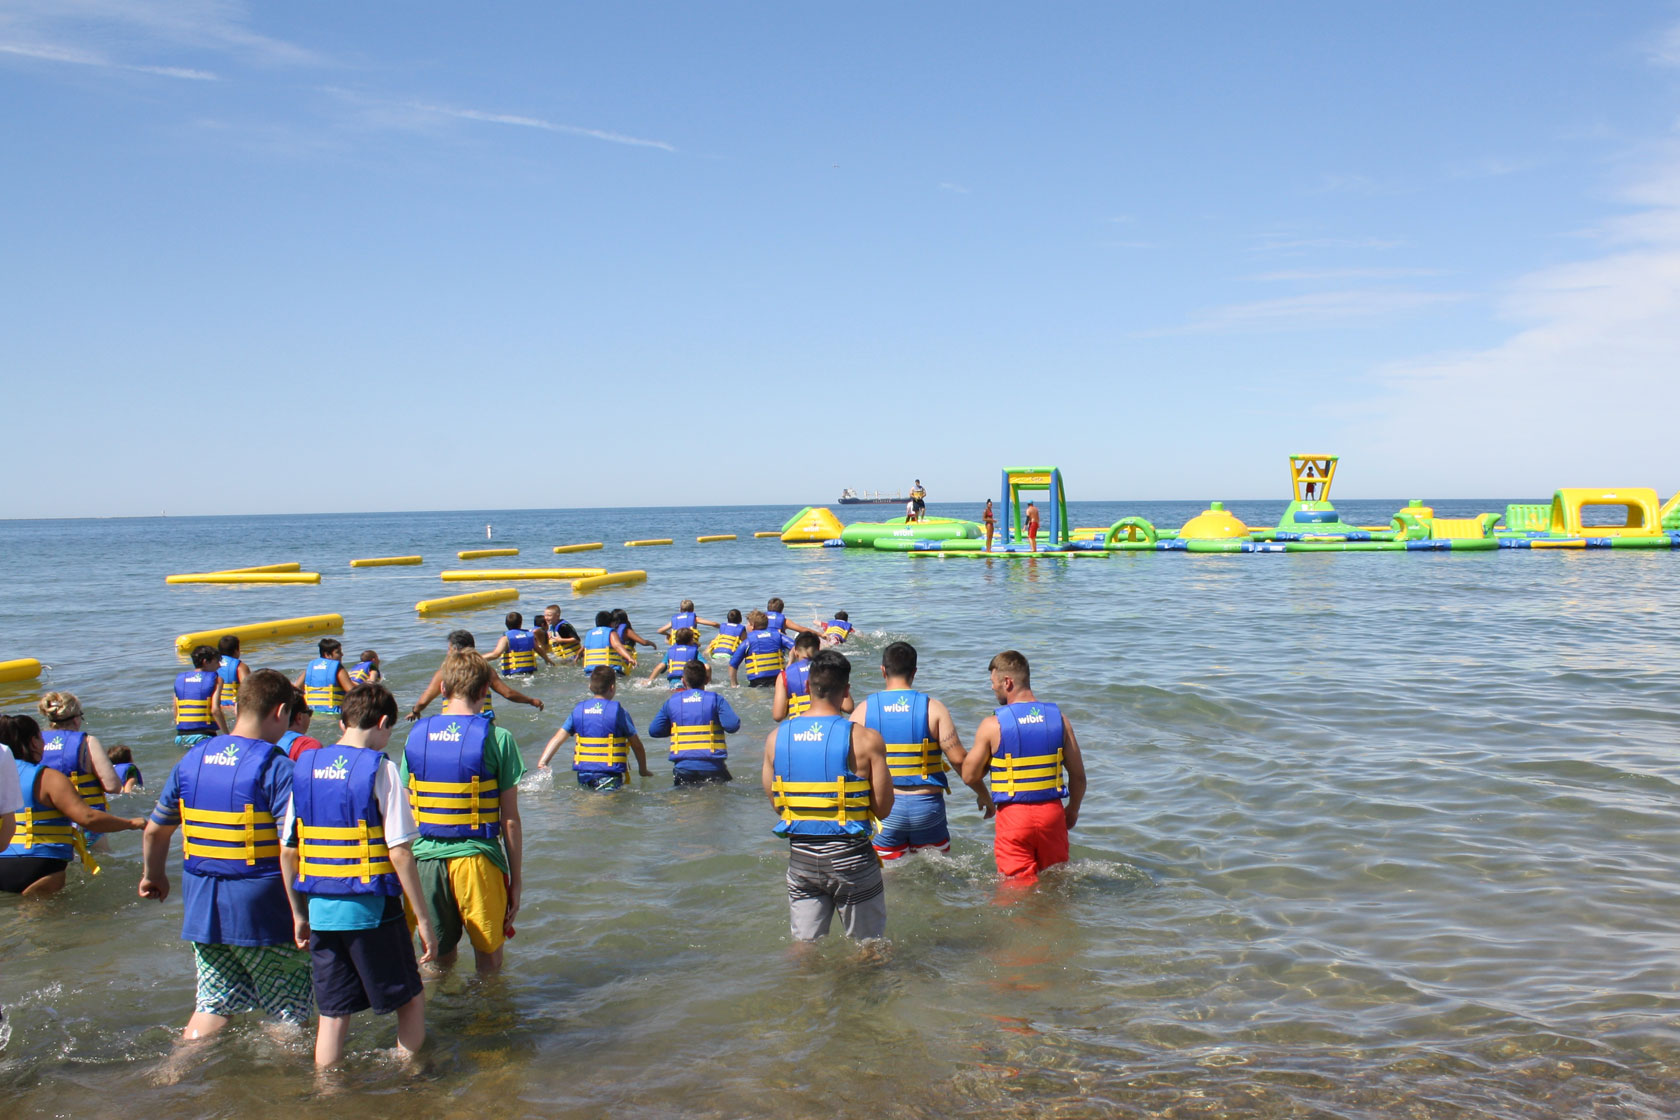 Whihala Beach Is Already Recognized As An Iconic Nature Based Summer Activity Area And By Adding Wibit To The Waterfront Whoazone At